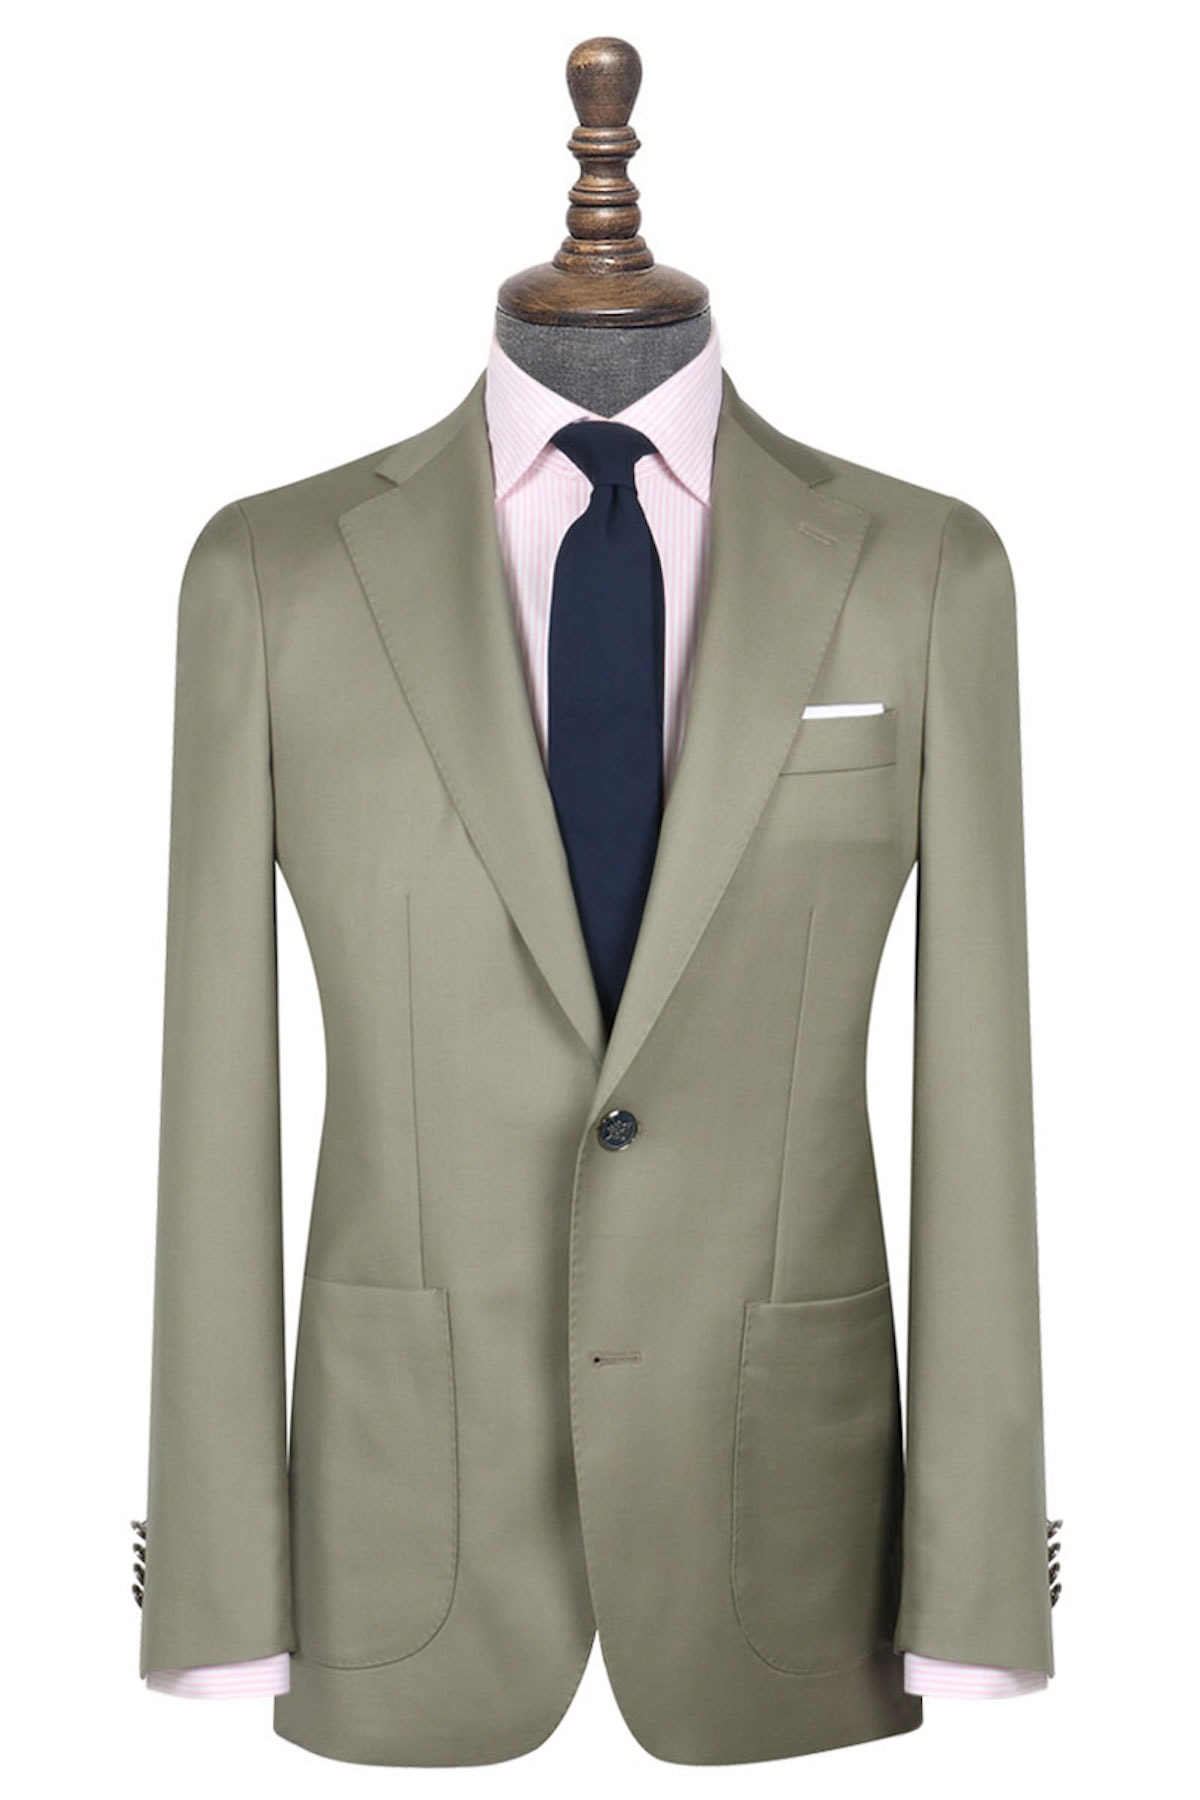 InStitchu Collection The Nesta Pastel Olive Green Wool Jacket